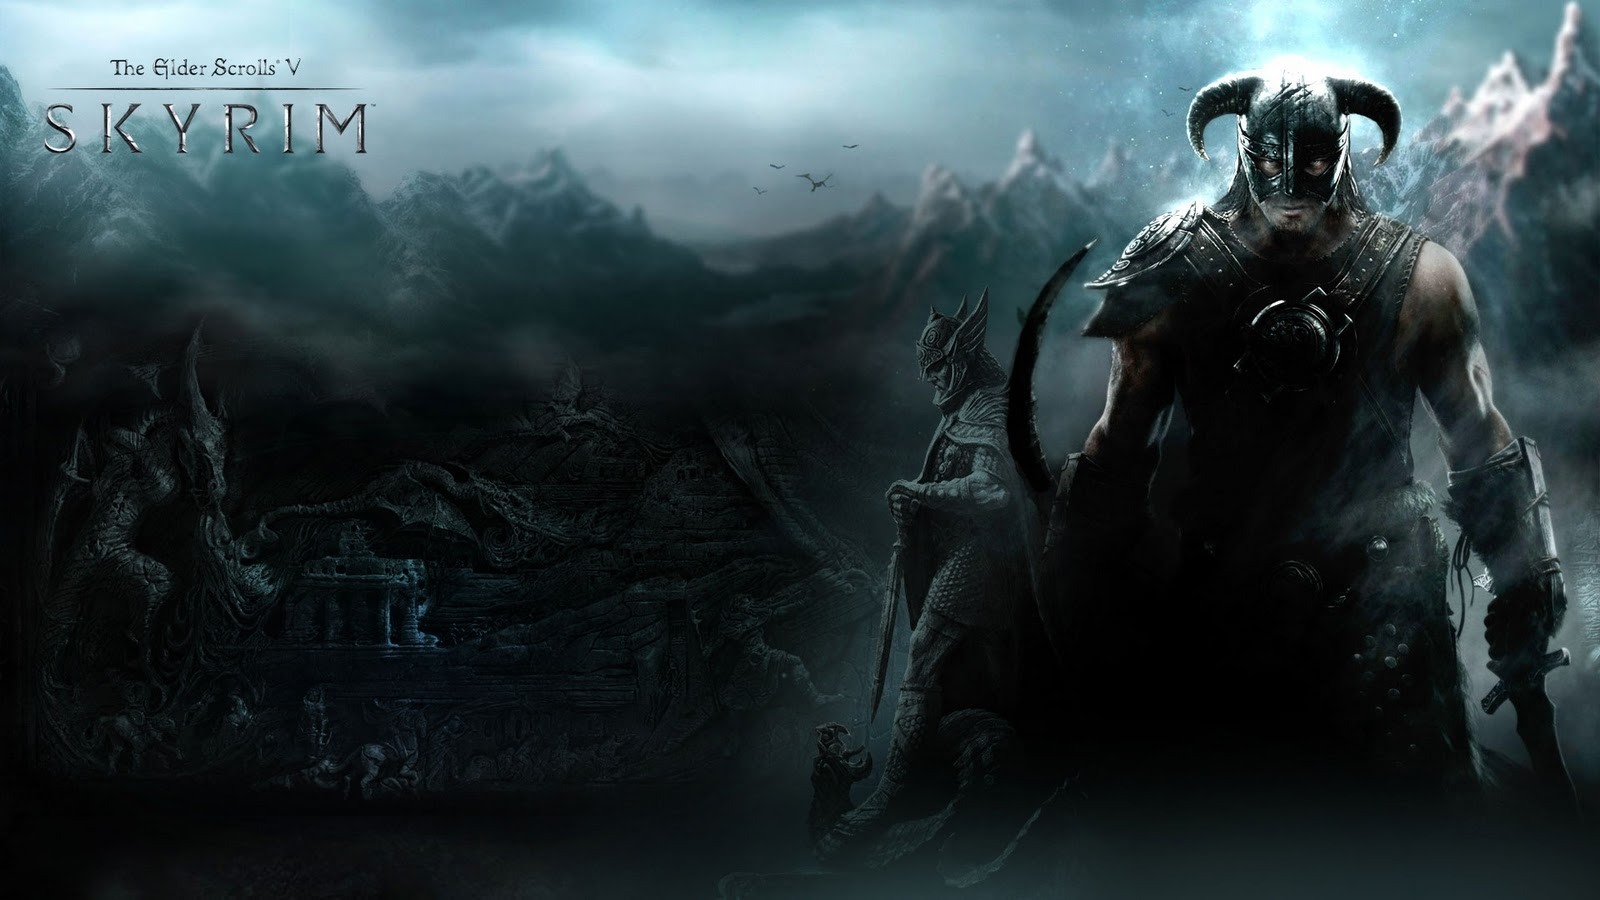 http://1.bp.blogspot.com/-jwWZcBMhkPc/Tw6C4mEpIUI/AAAAAAAAAdE/Rma2McmM8vY/s1600/The-Elder-Scrolls-V-Skyrim-Wallpapers-in-HD.jpg